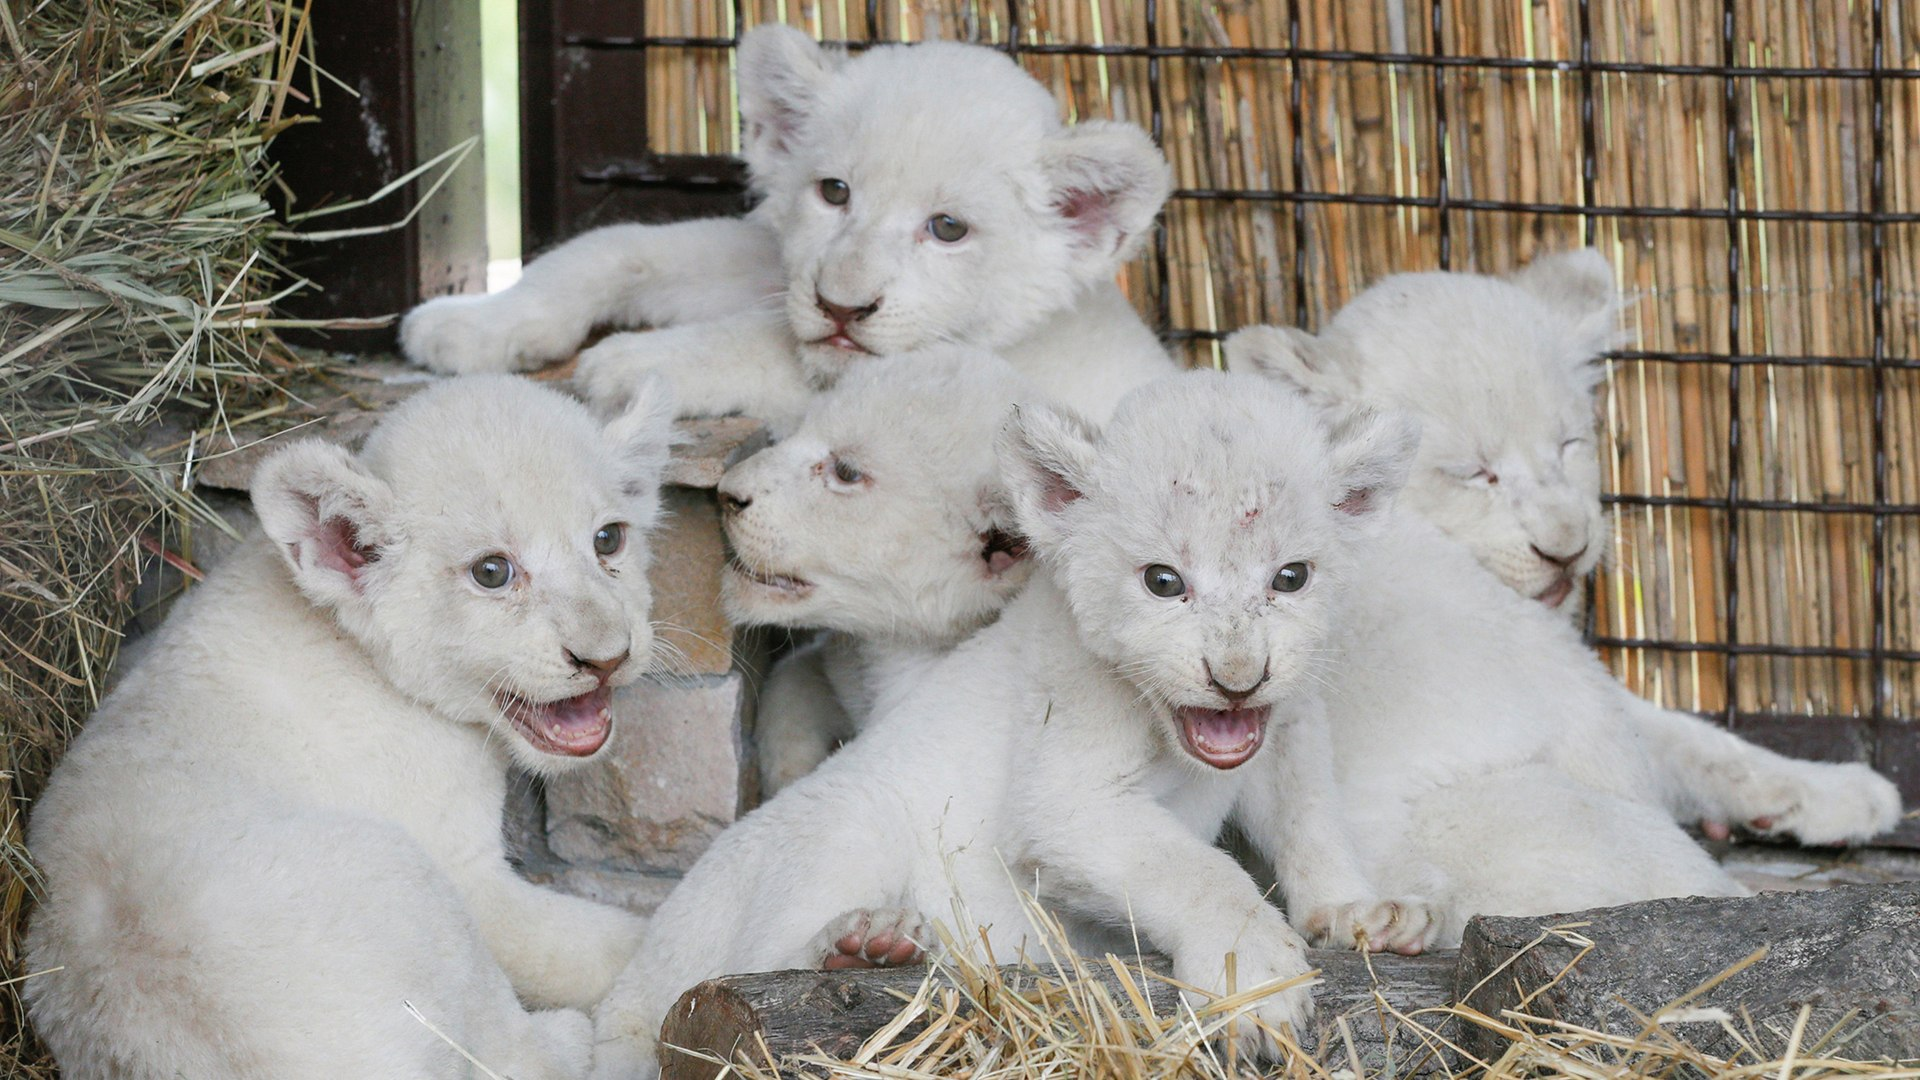 Newly-born white lion cubs are seen in their enclosure at private zoo outside of Kiev.